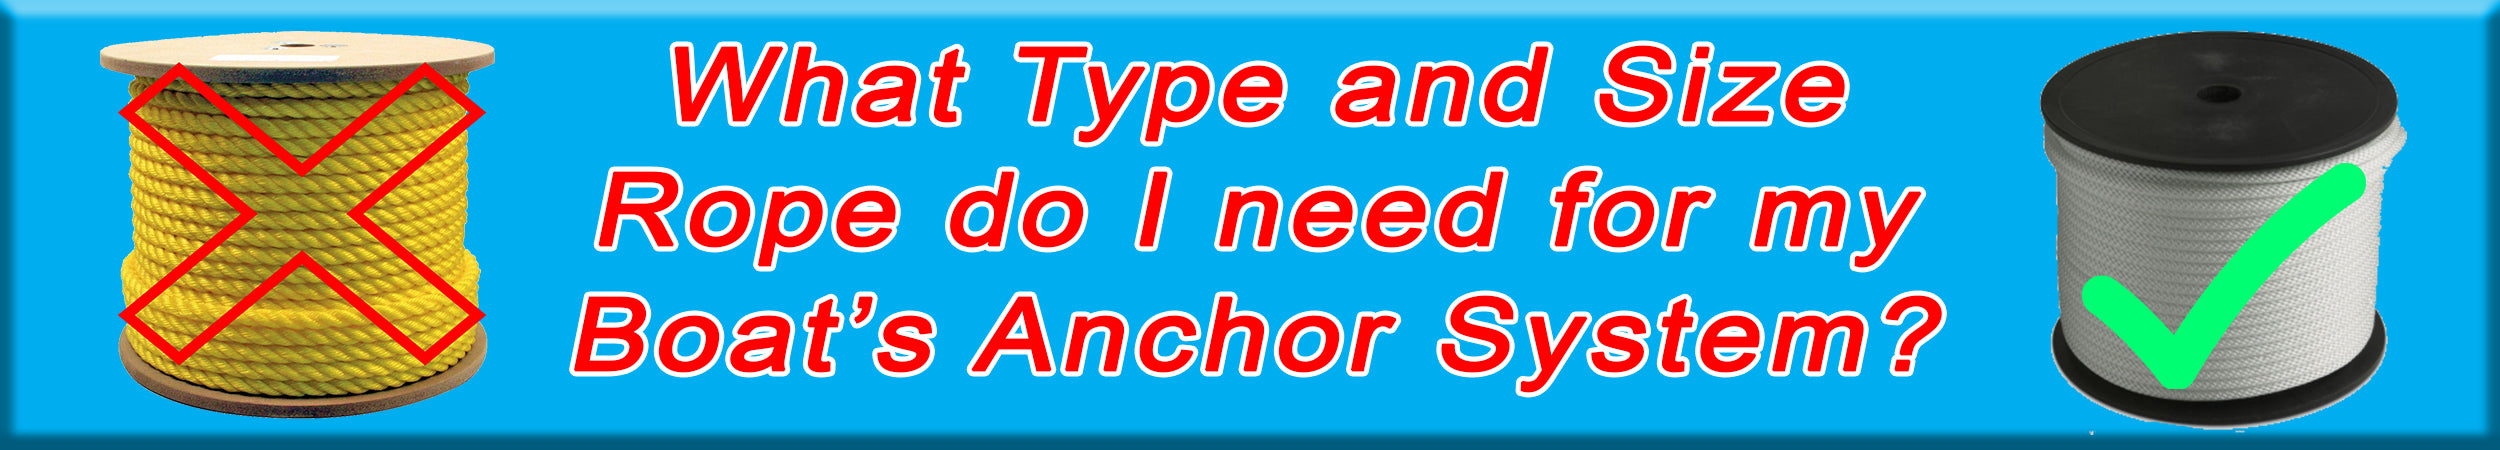 What type and size anchor rope for a boat's anchor system